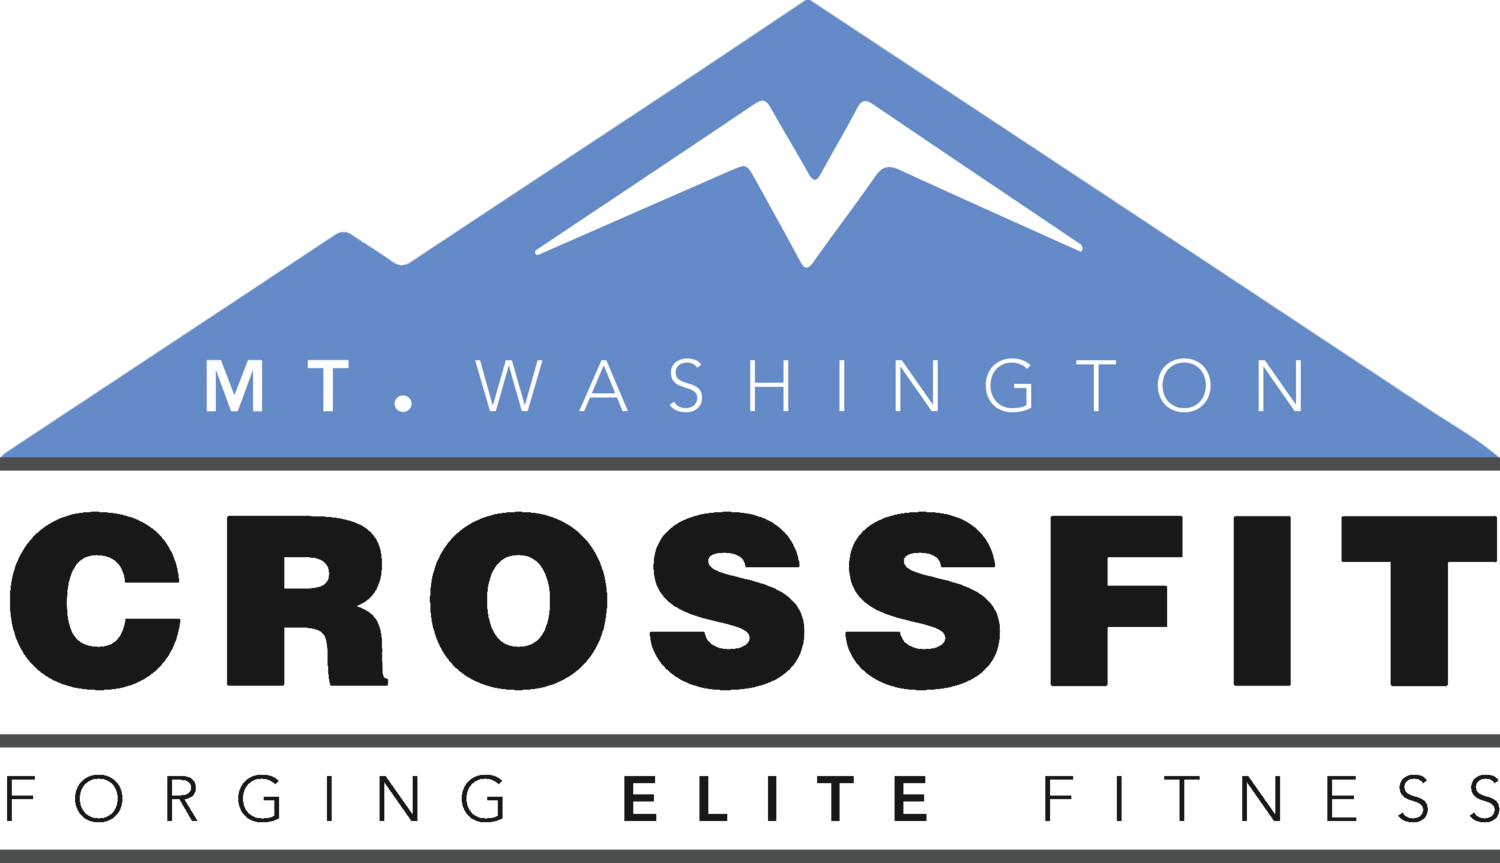 Mt. Washington CrossFit